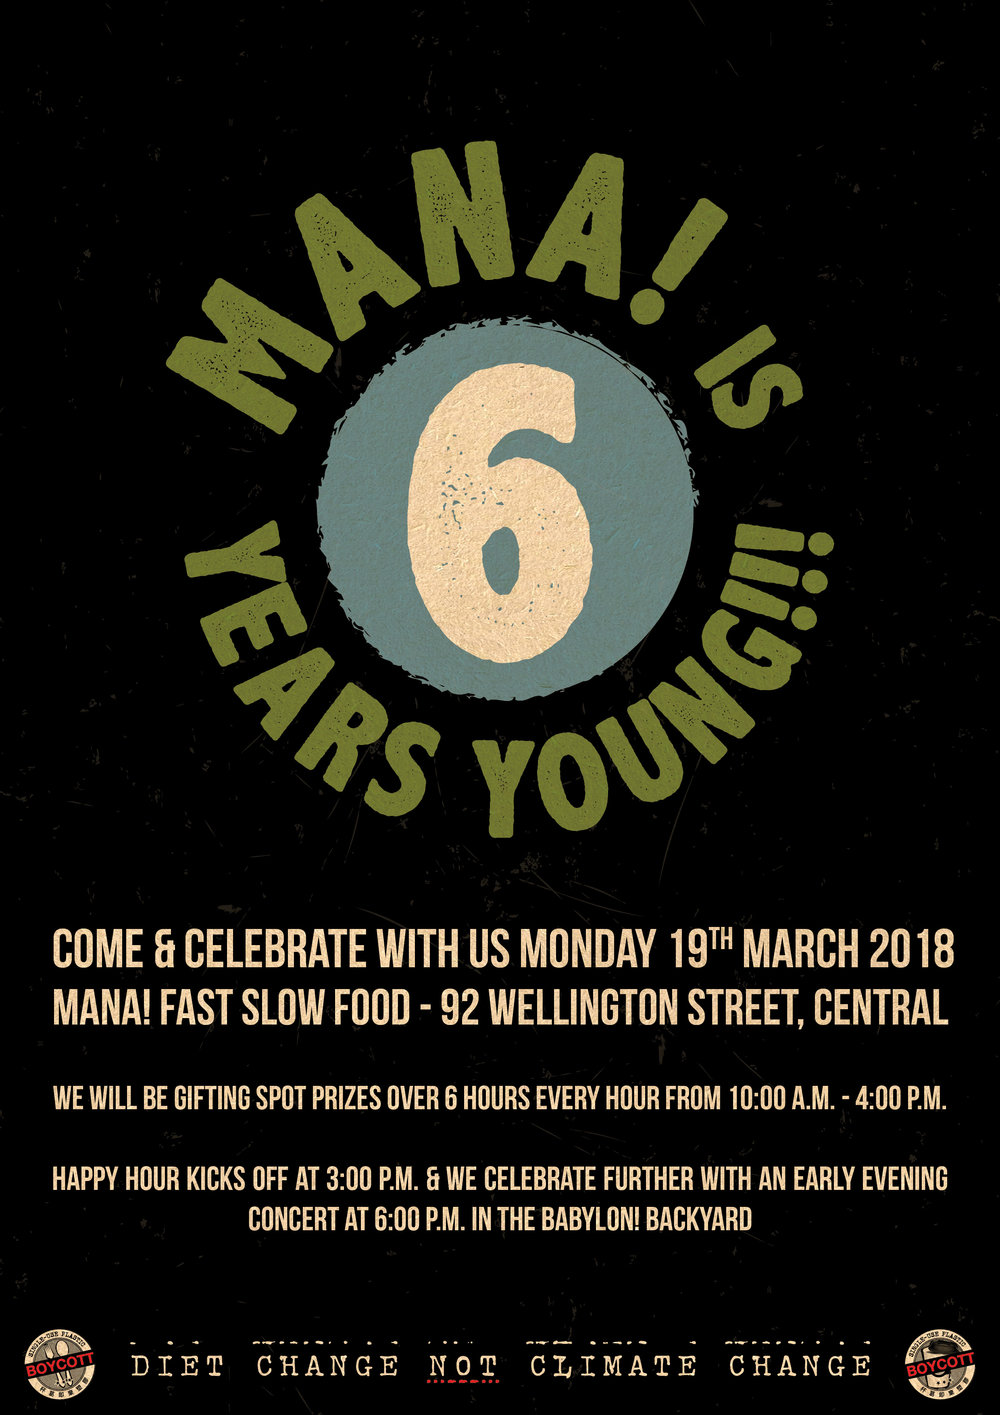 MANA! 6 Years Young - Poster 01A.jpg